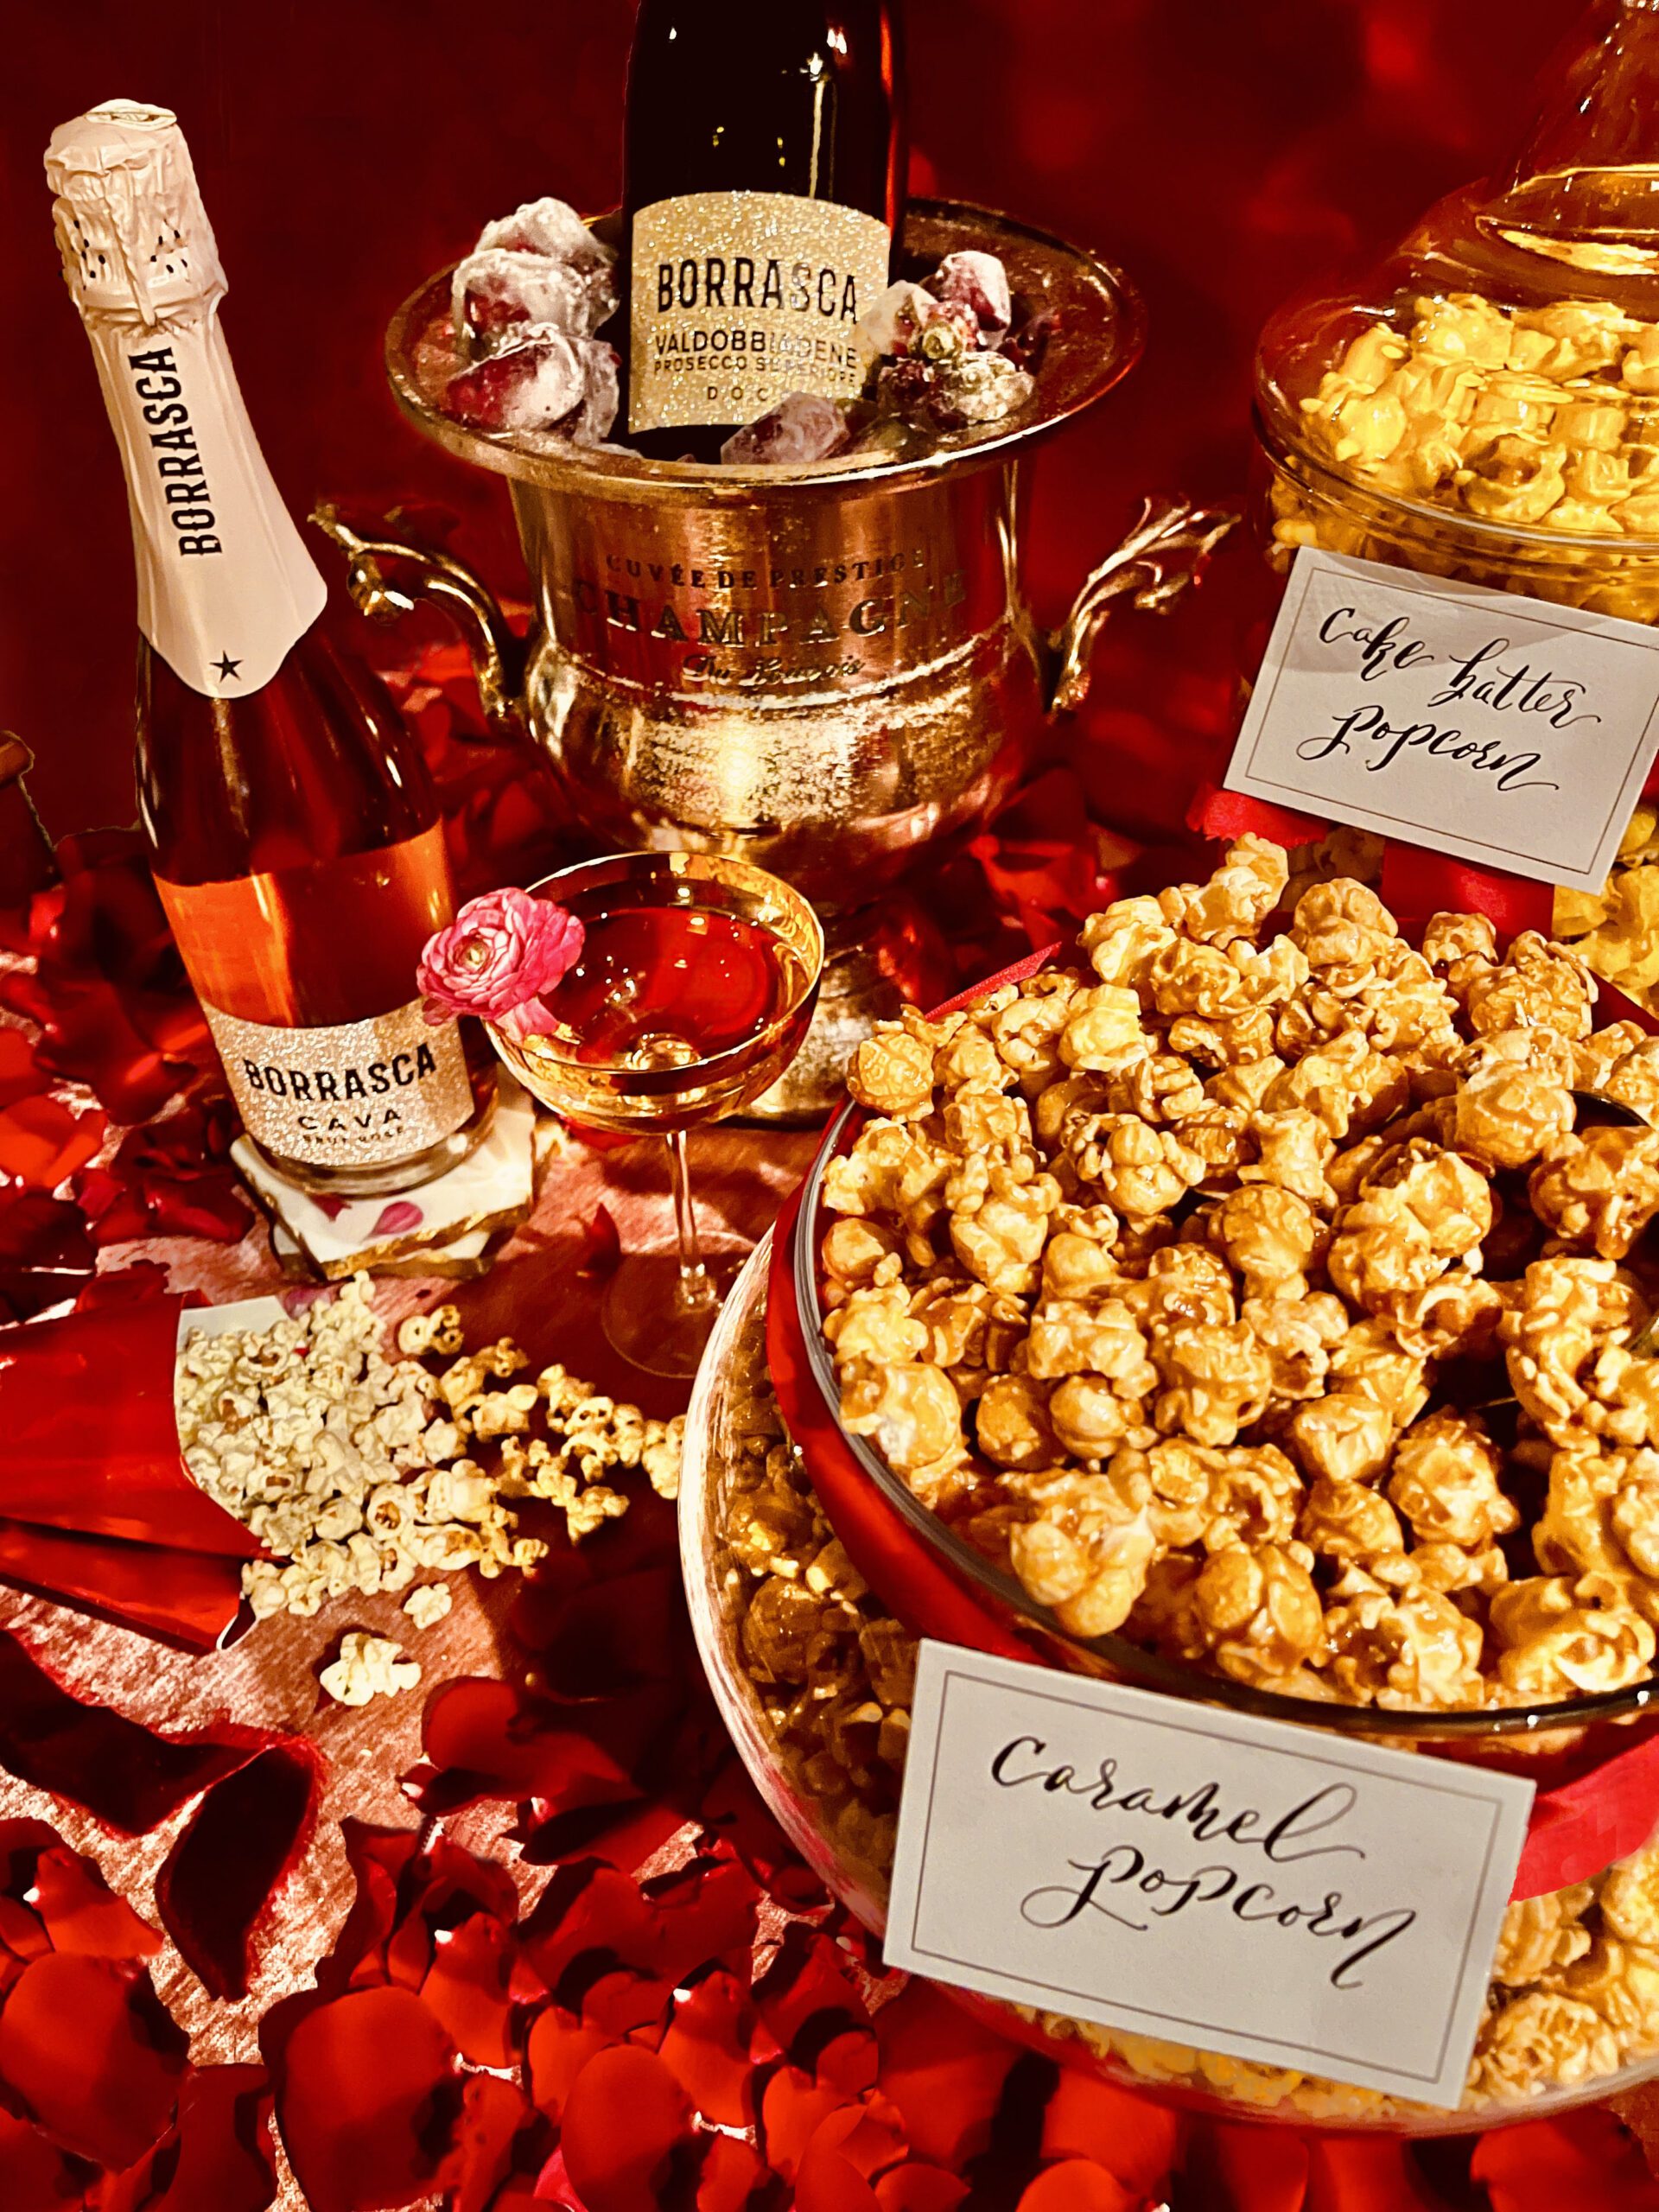 Sparkling wine and popcorn pairings